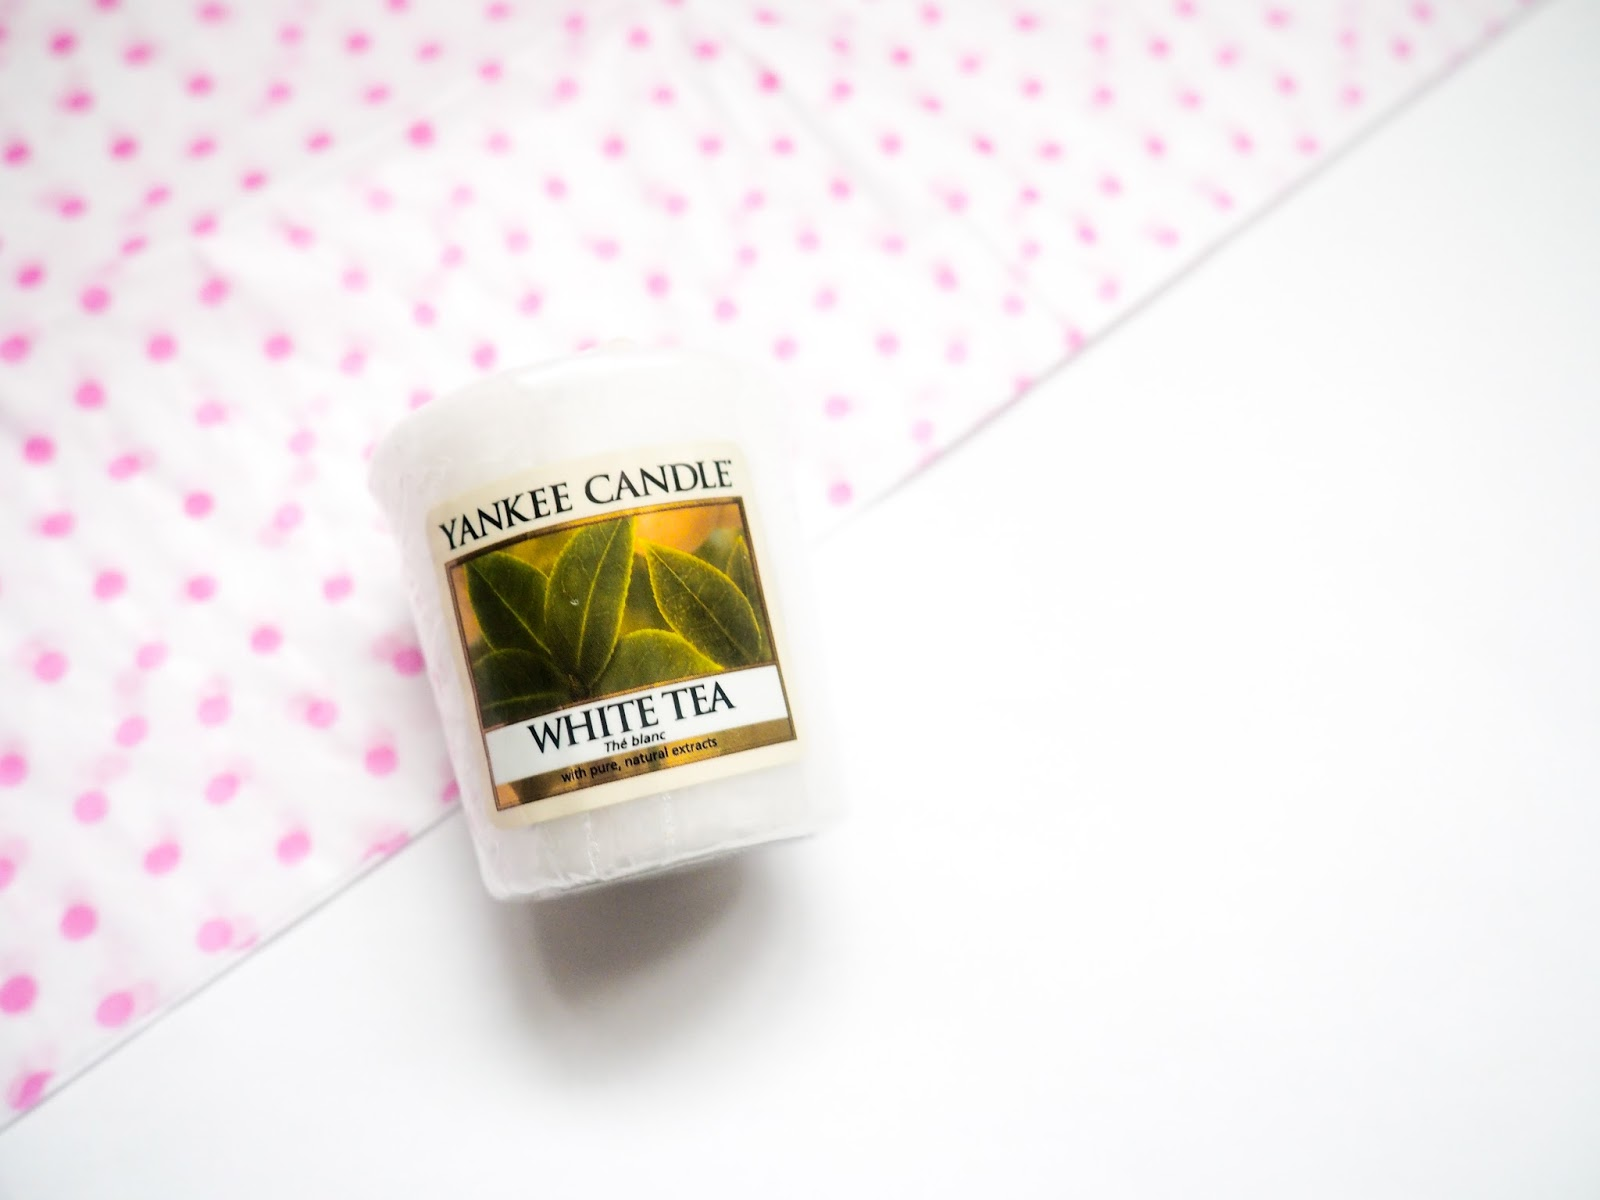 Yankee Candle White Tea Votive